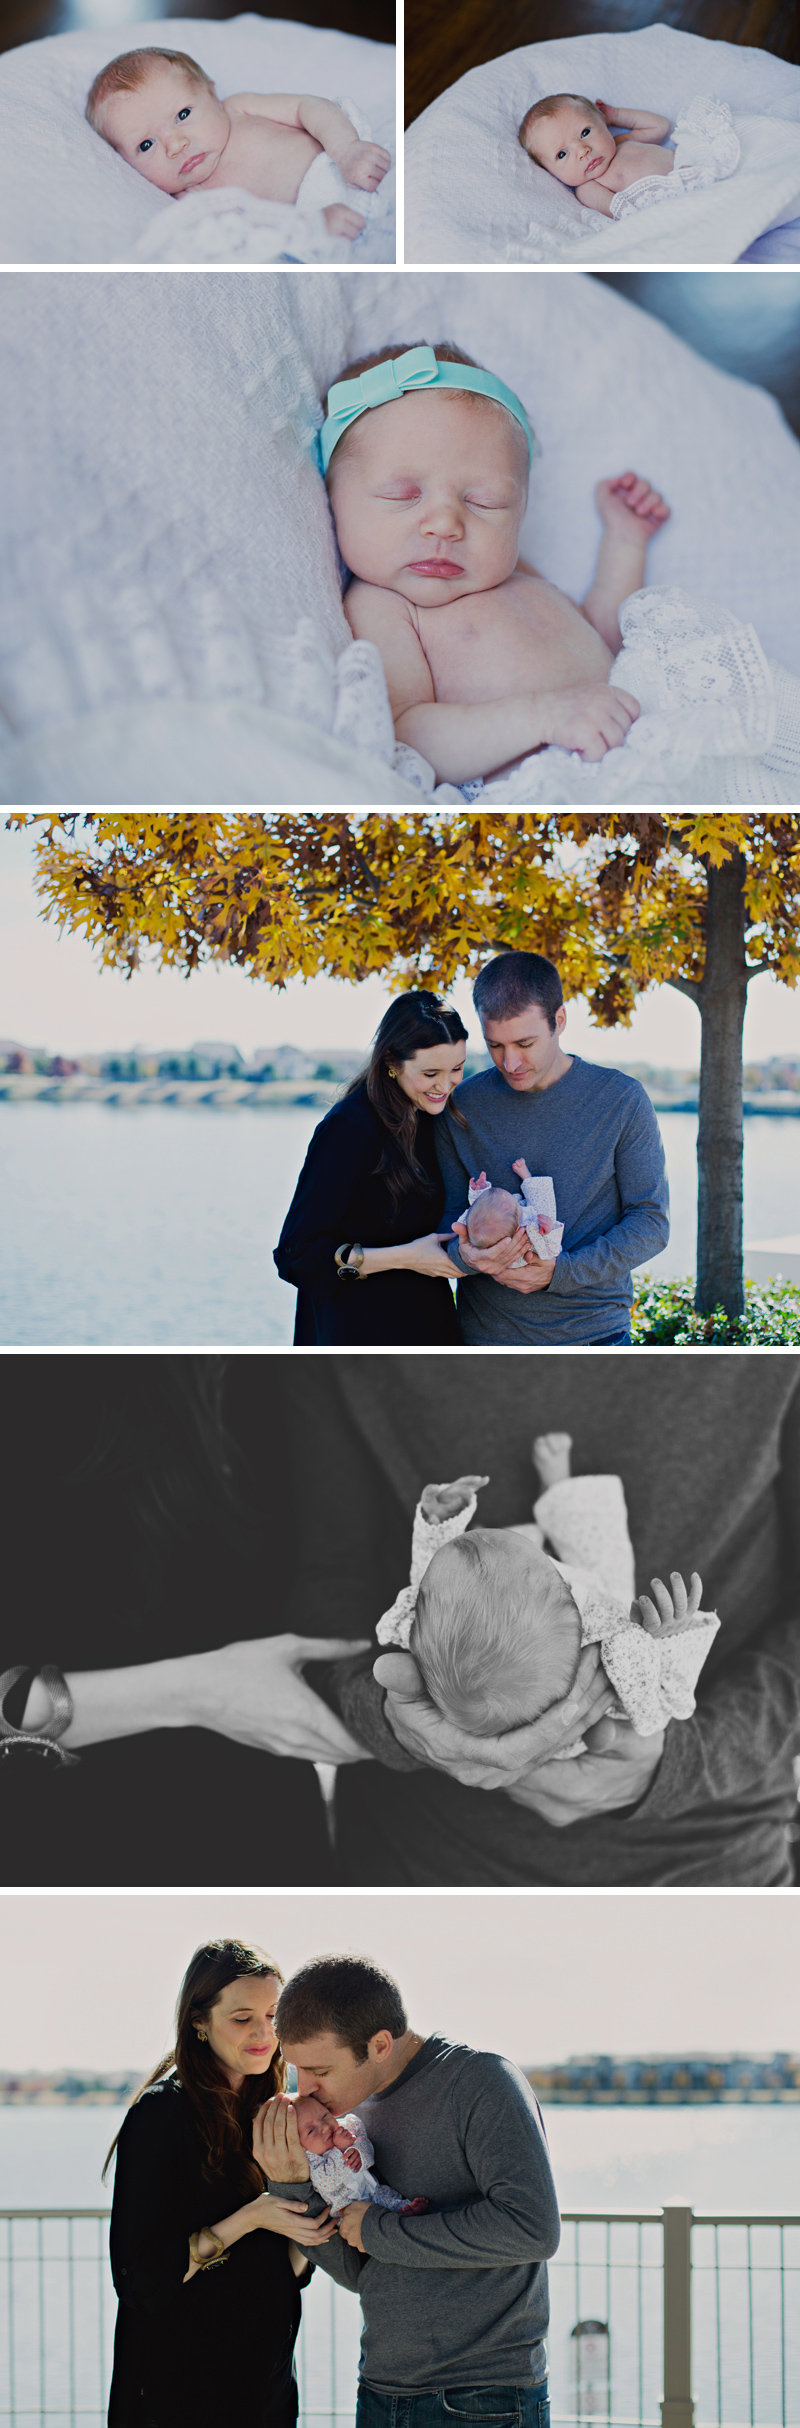 Dallas-Newborn-Photographerc013